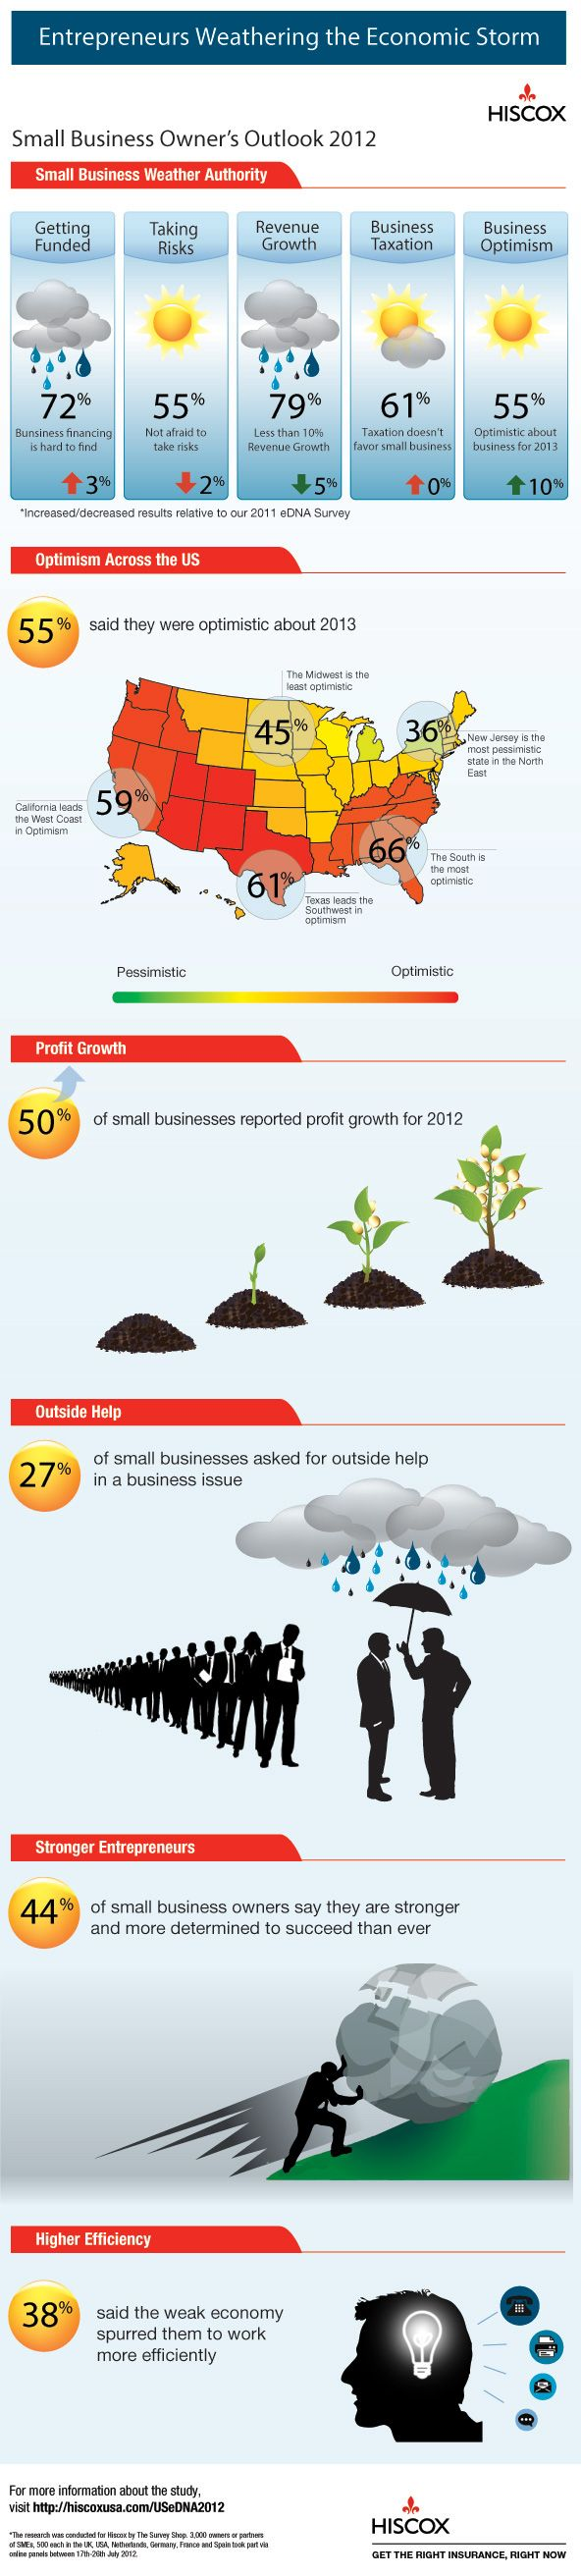 Infographics Hiscox eDNA 2012 Small Businesses and US